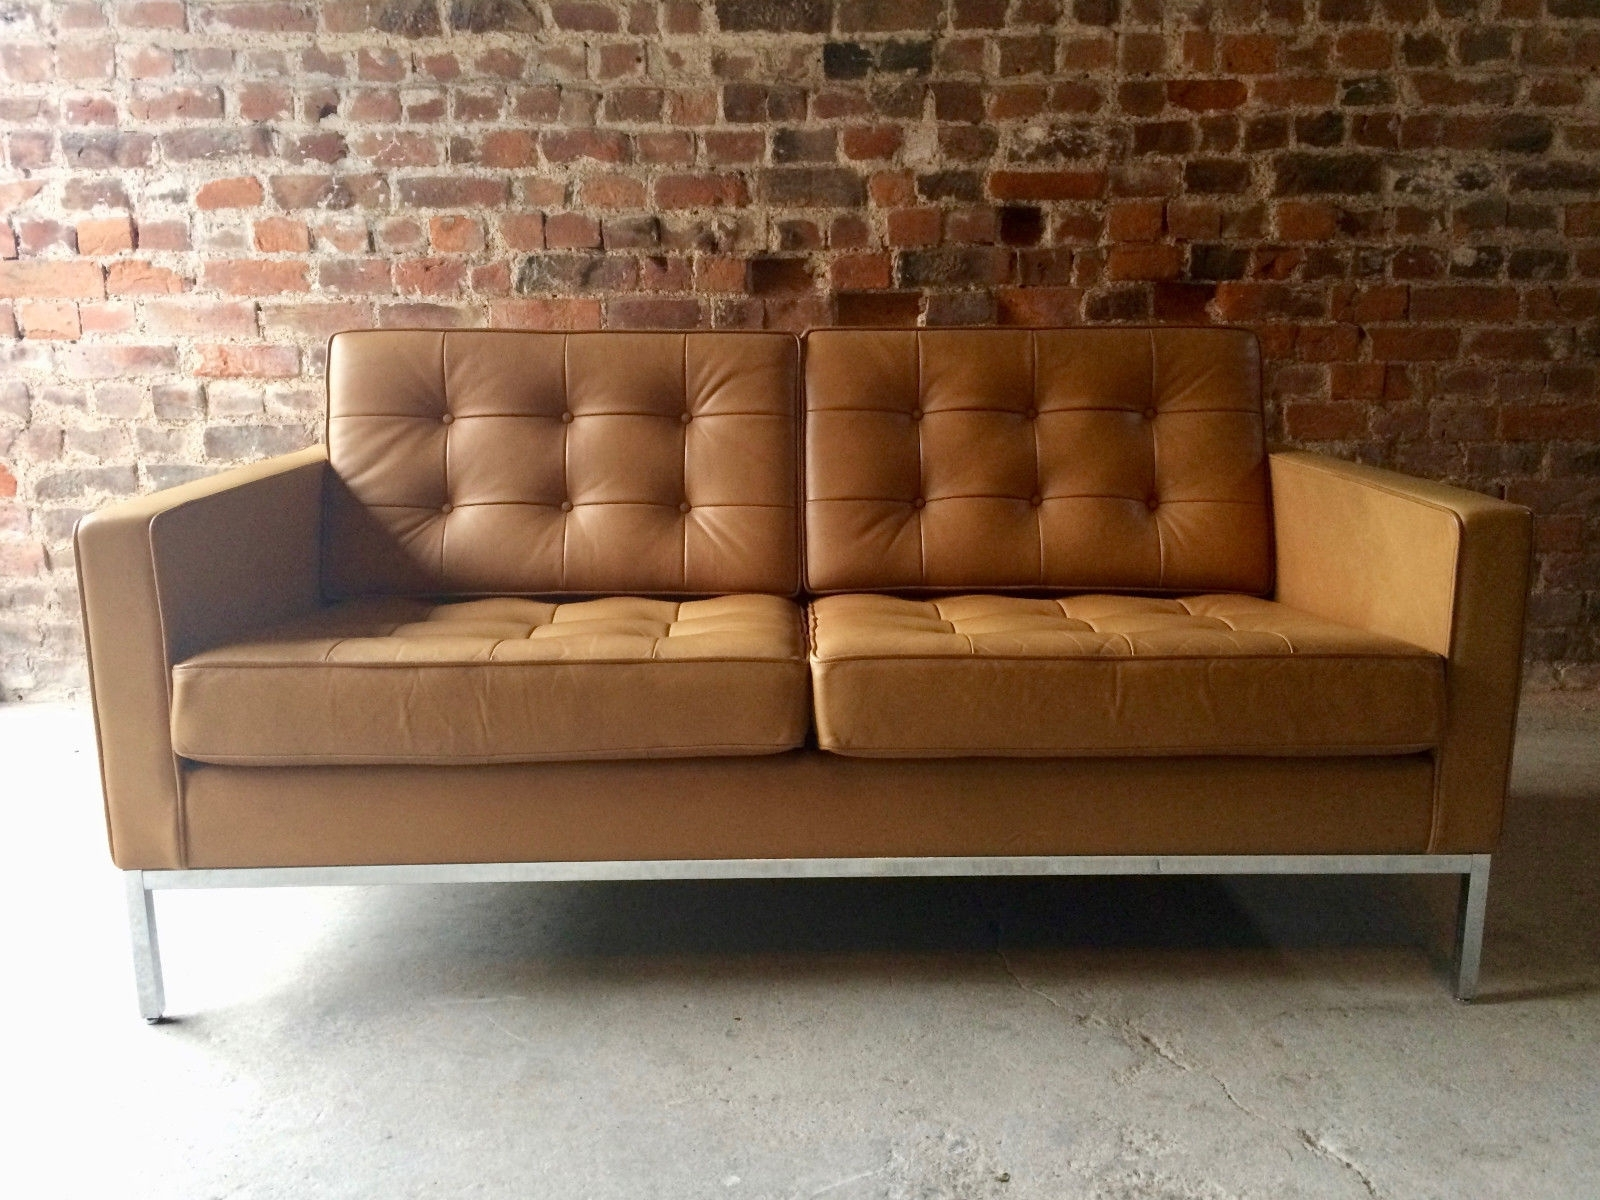 Florence Knoll Leather Sofas Within Most Current Vintage 2 Seater Leather Sofaflorence Knoll For Knoll For Sale (View 6 of 15)